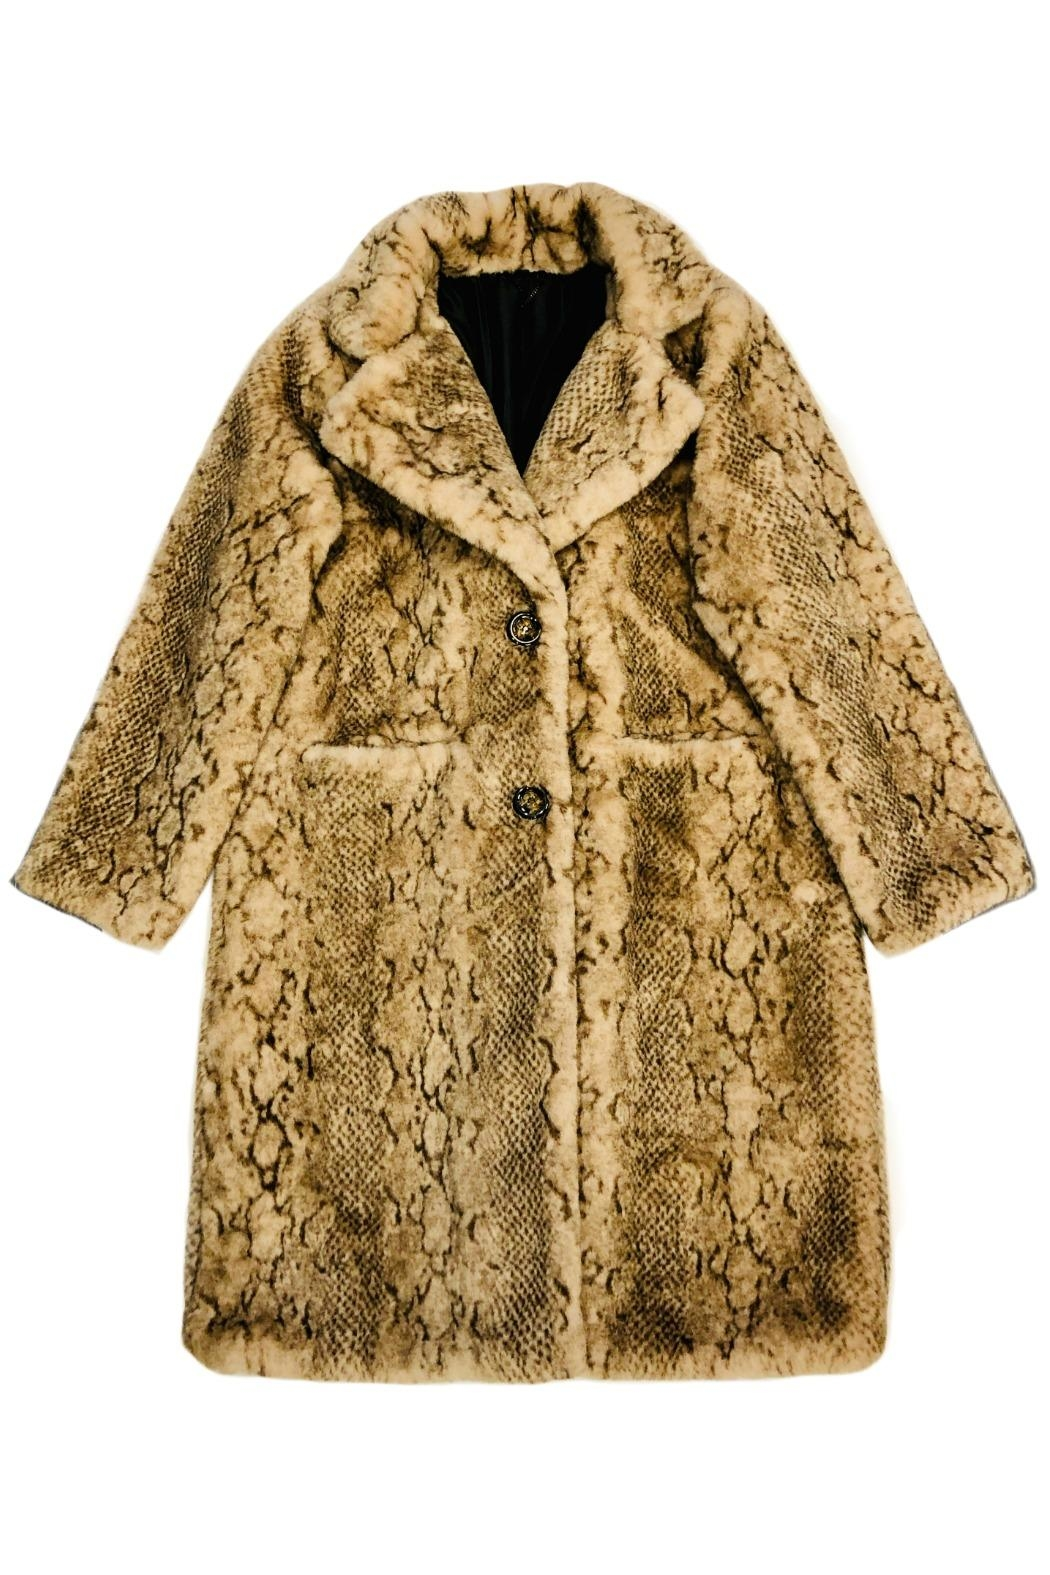 low priced 7664f 9f9dc ANTONELLO SERIO Faux Fur Coat from Portland by Moods of ...